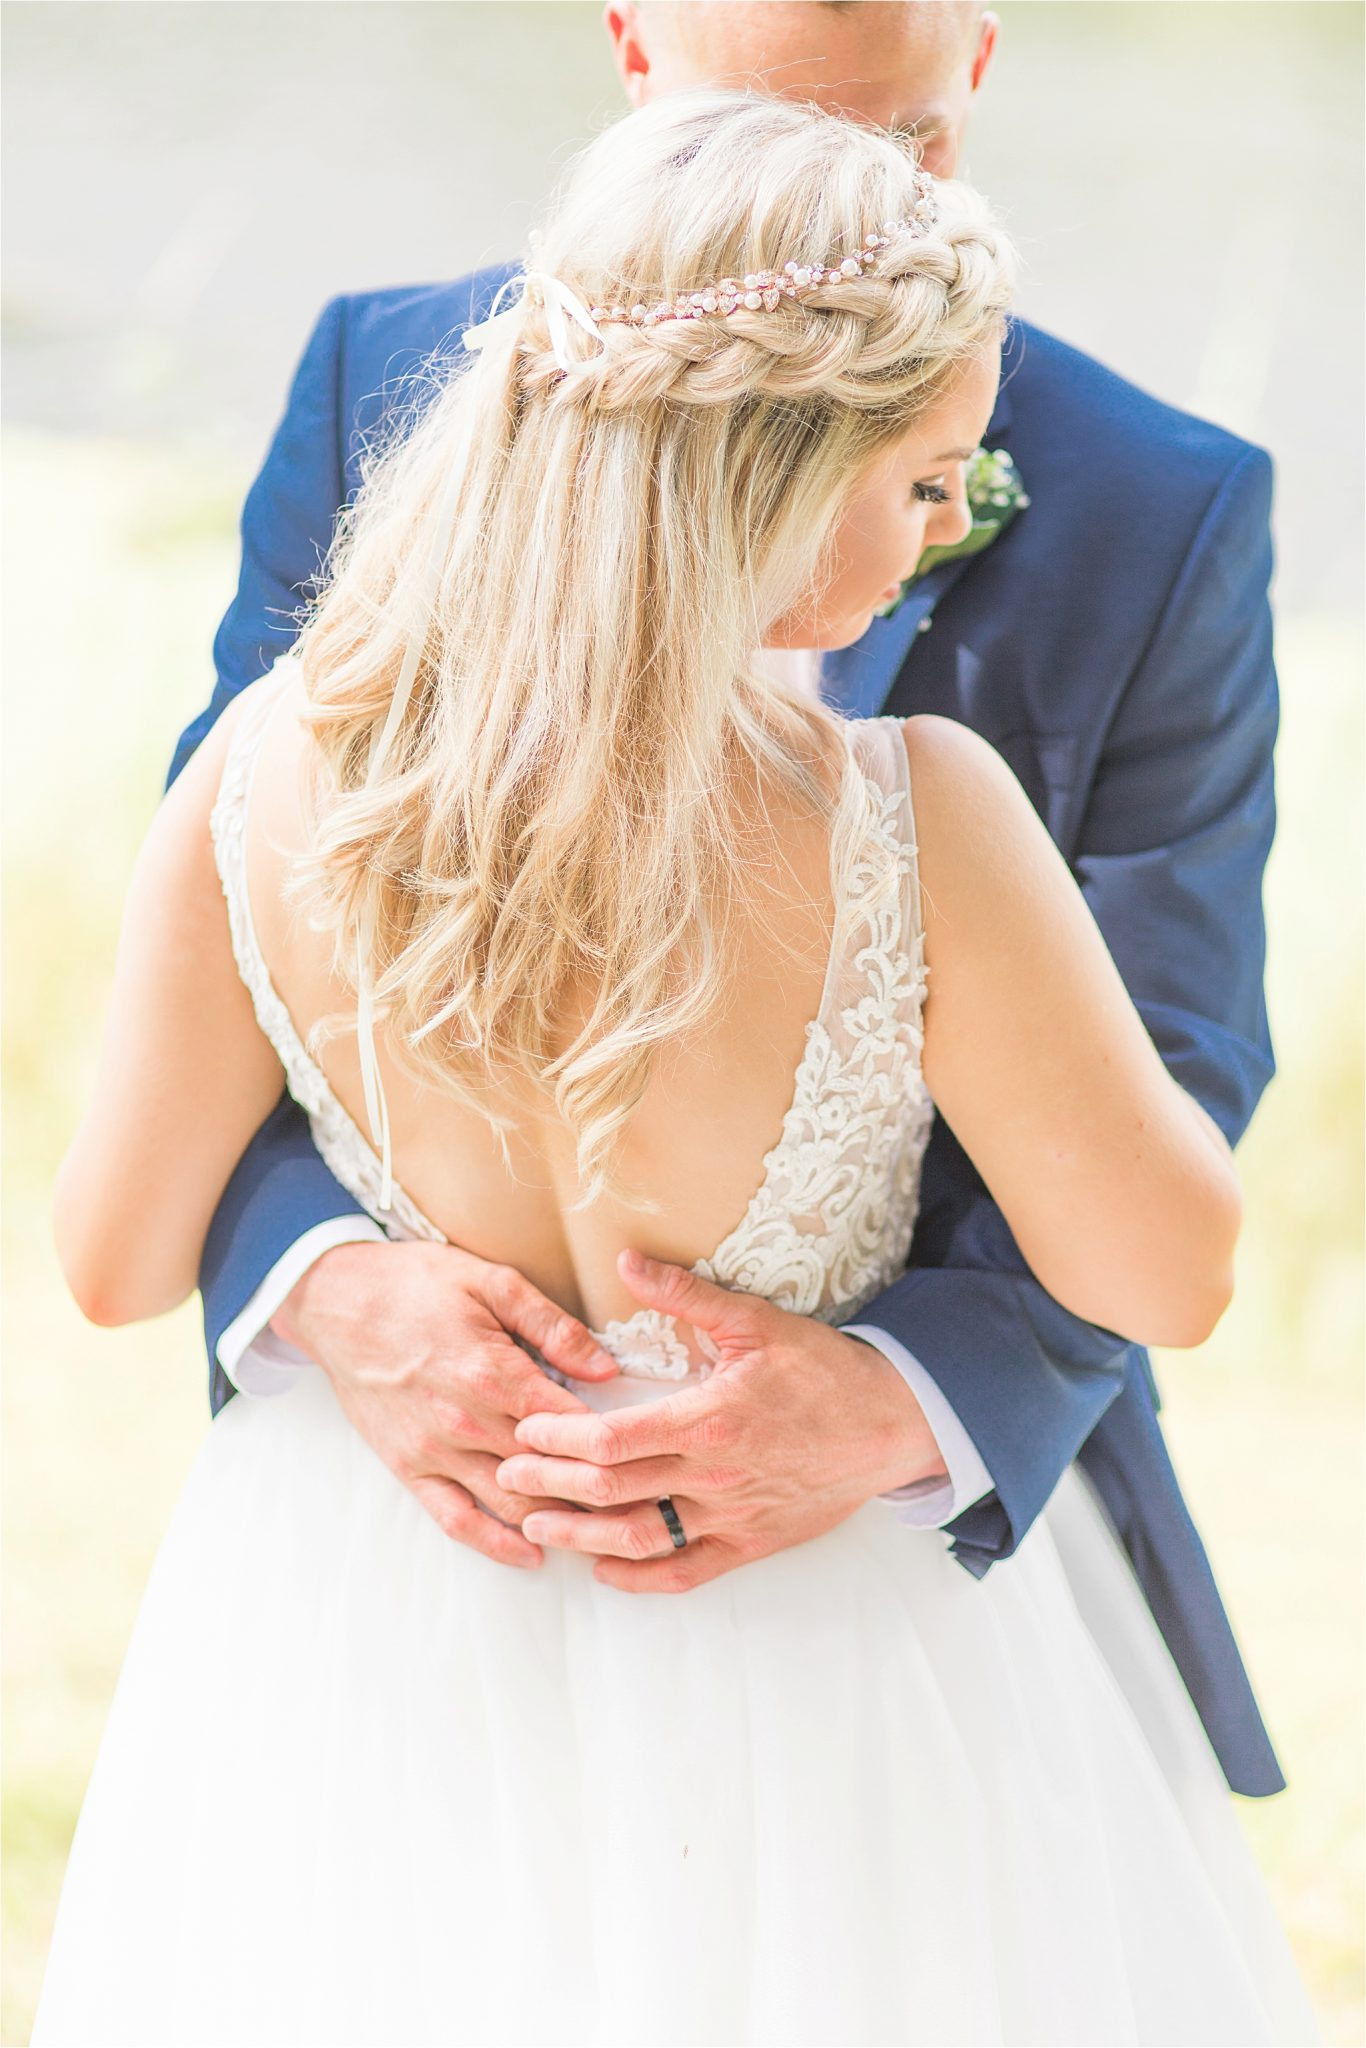 bridal-groom-portraits-photos-blue-suit-bow-tie-first-look-ideas-braided-hair